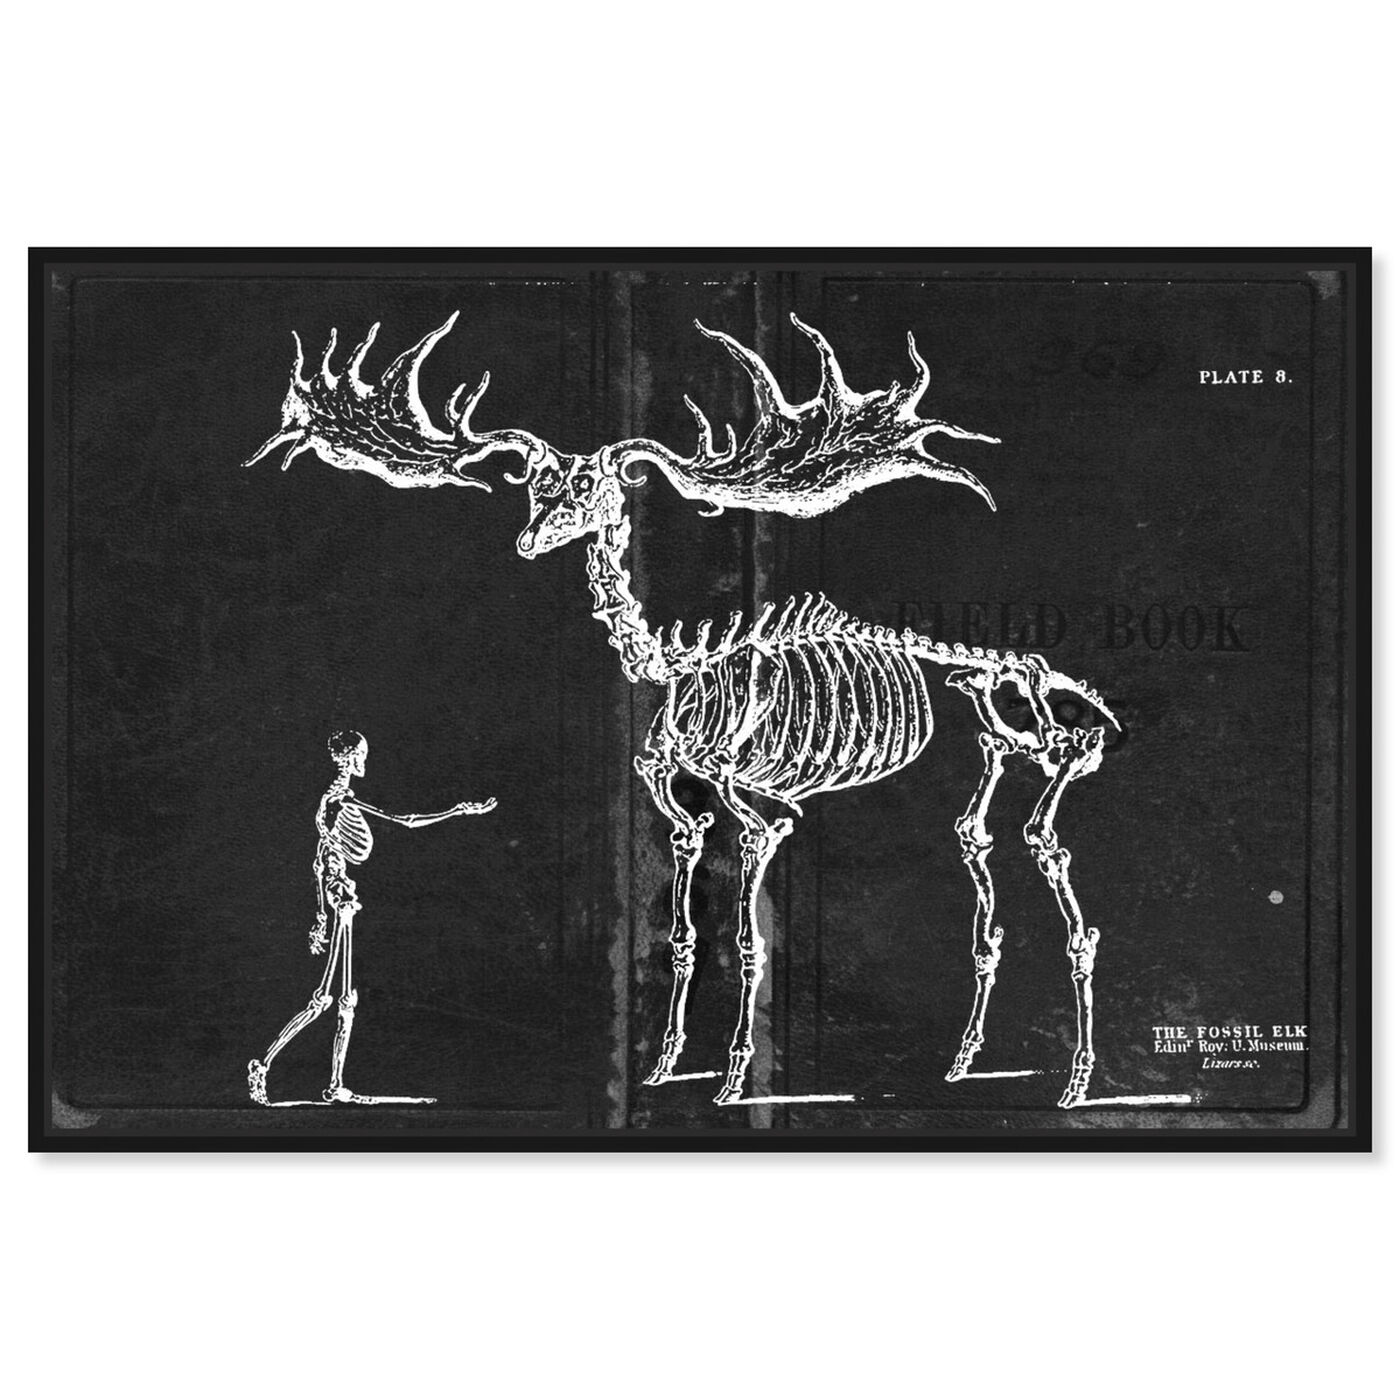 Front view of Fossil Elk 1830 featuring animals and skeletons art.